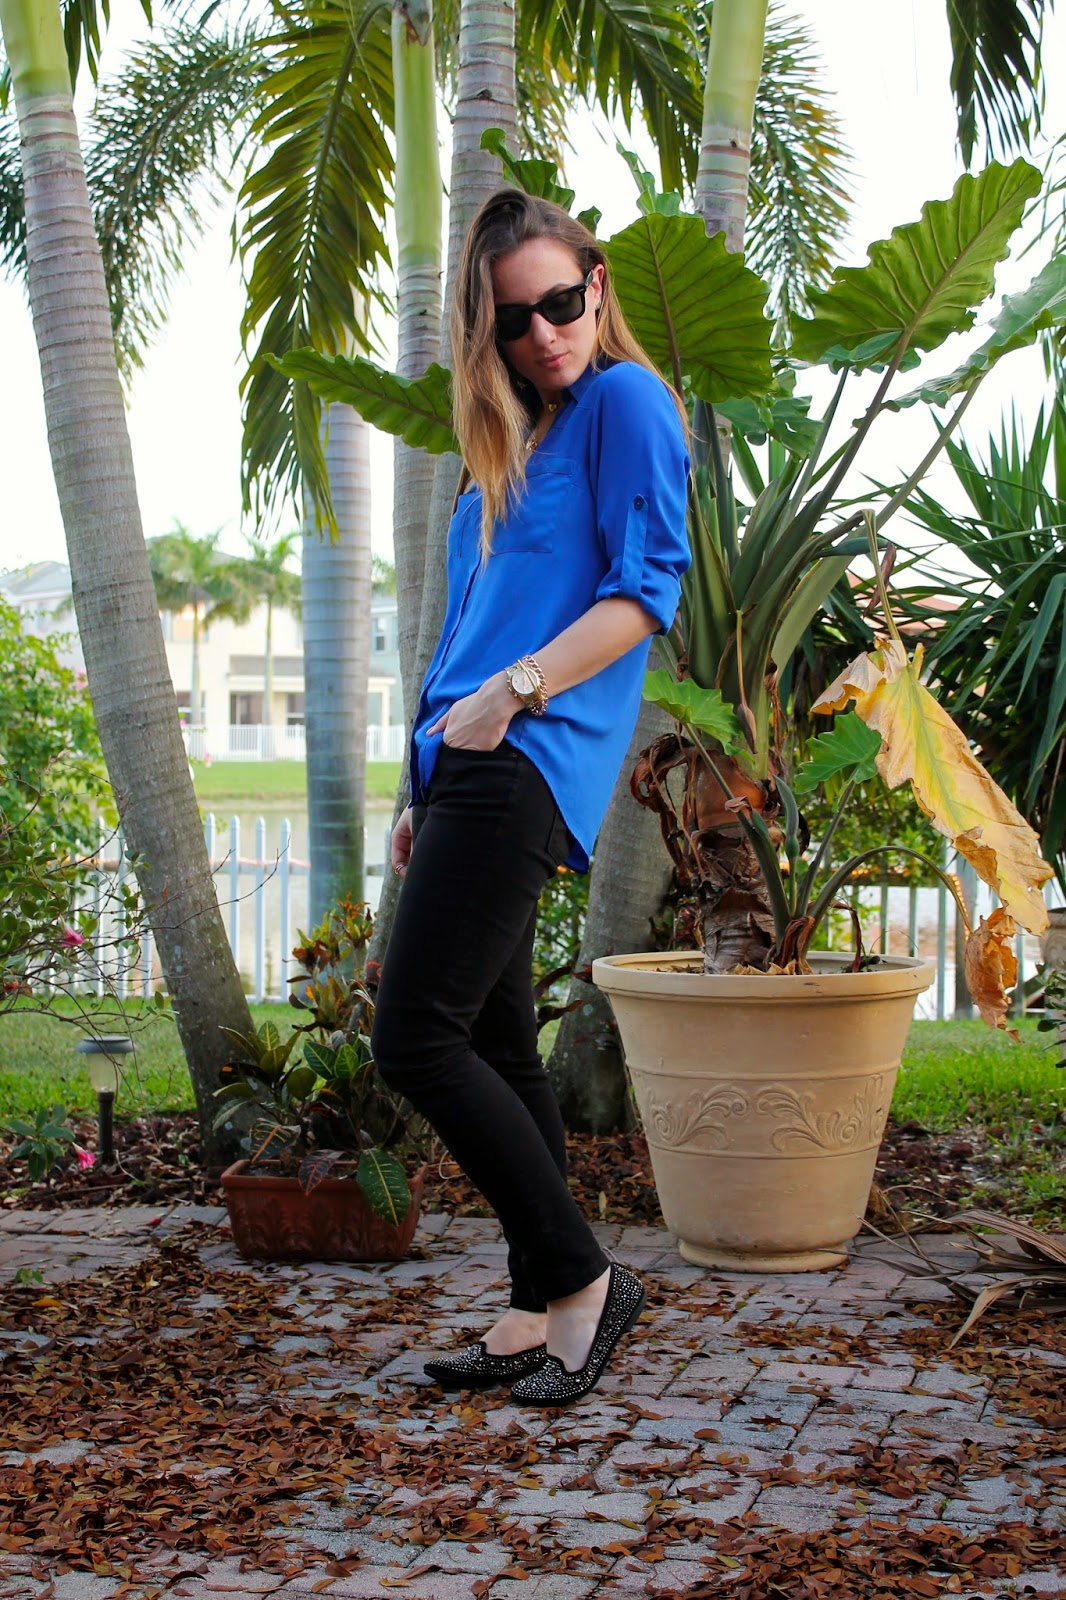 Express, Levi's, Ray-Ban, Kate Spade, Target, tailored, prep, southern, Miami, Miami fashion, style, fashion, ootd, personal style